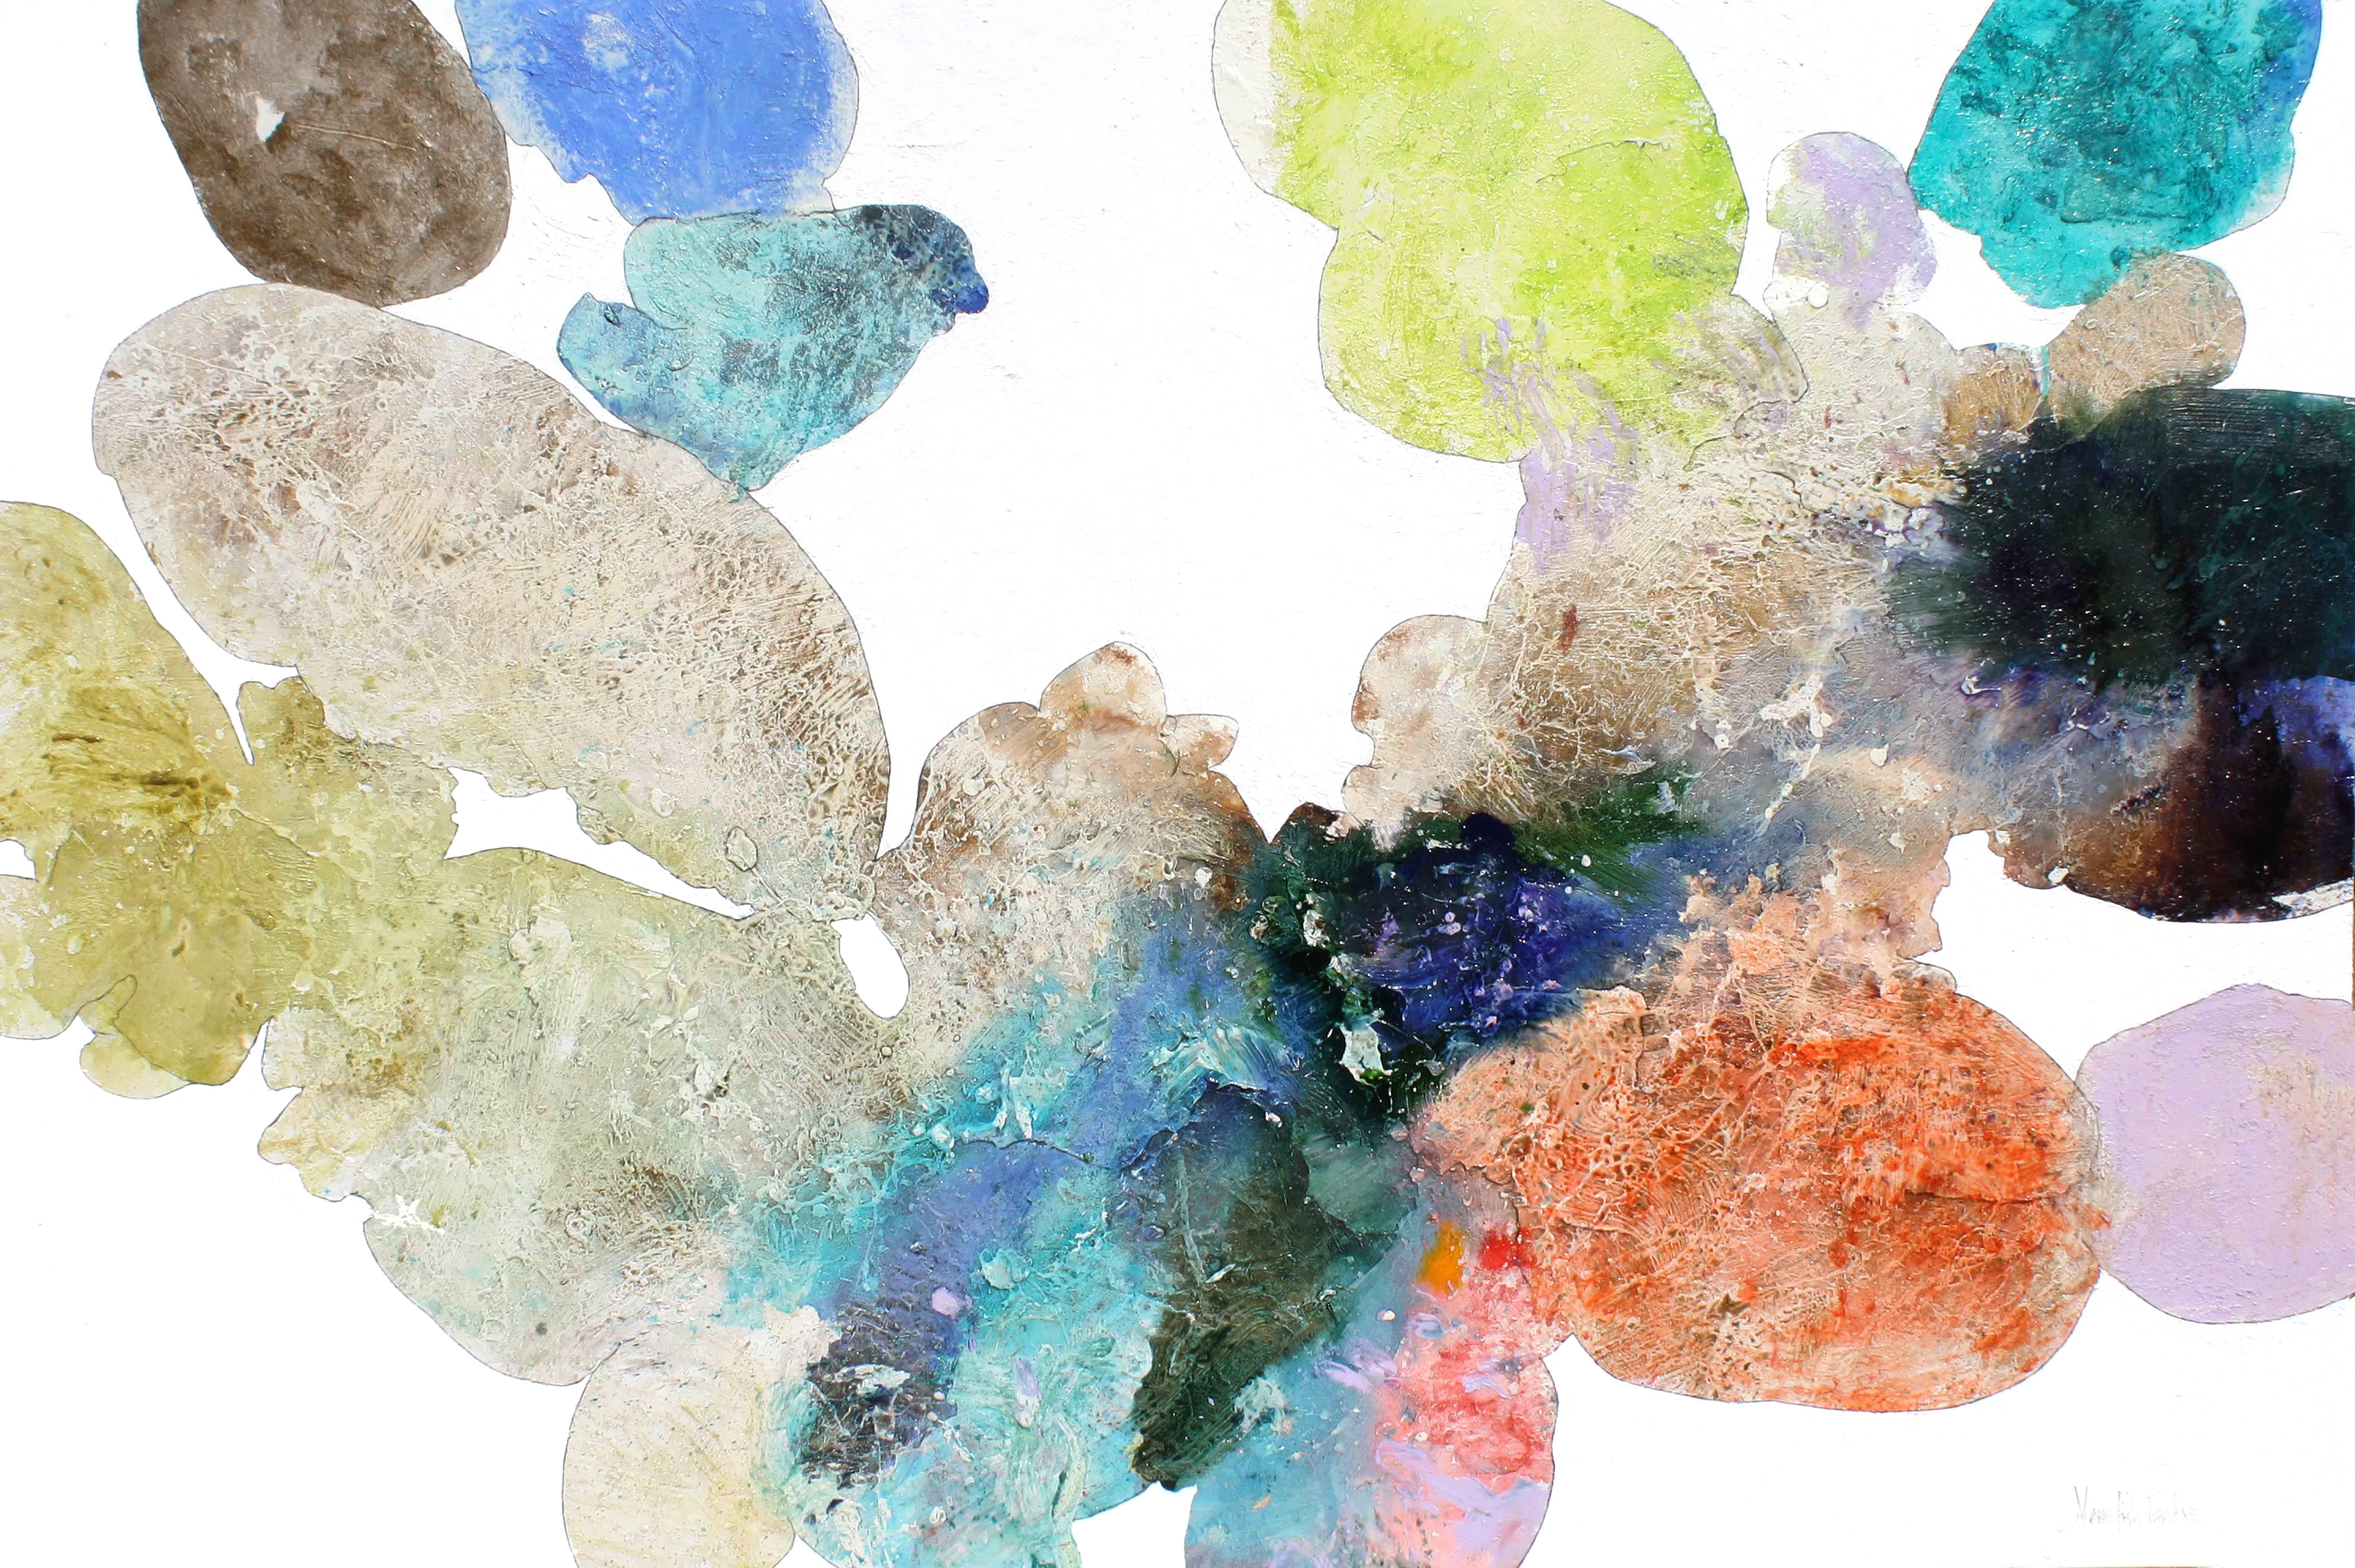 Meredith Pardue, Reef XIII, mixed media on canvas, 48h x 72w in